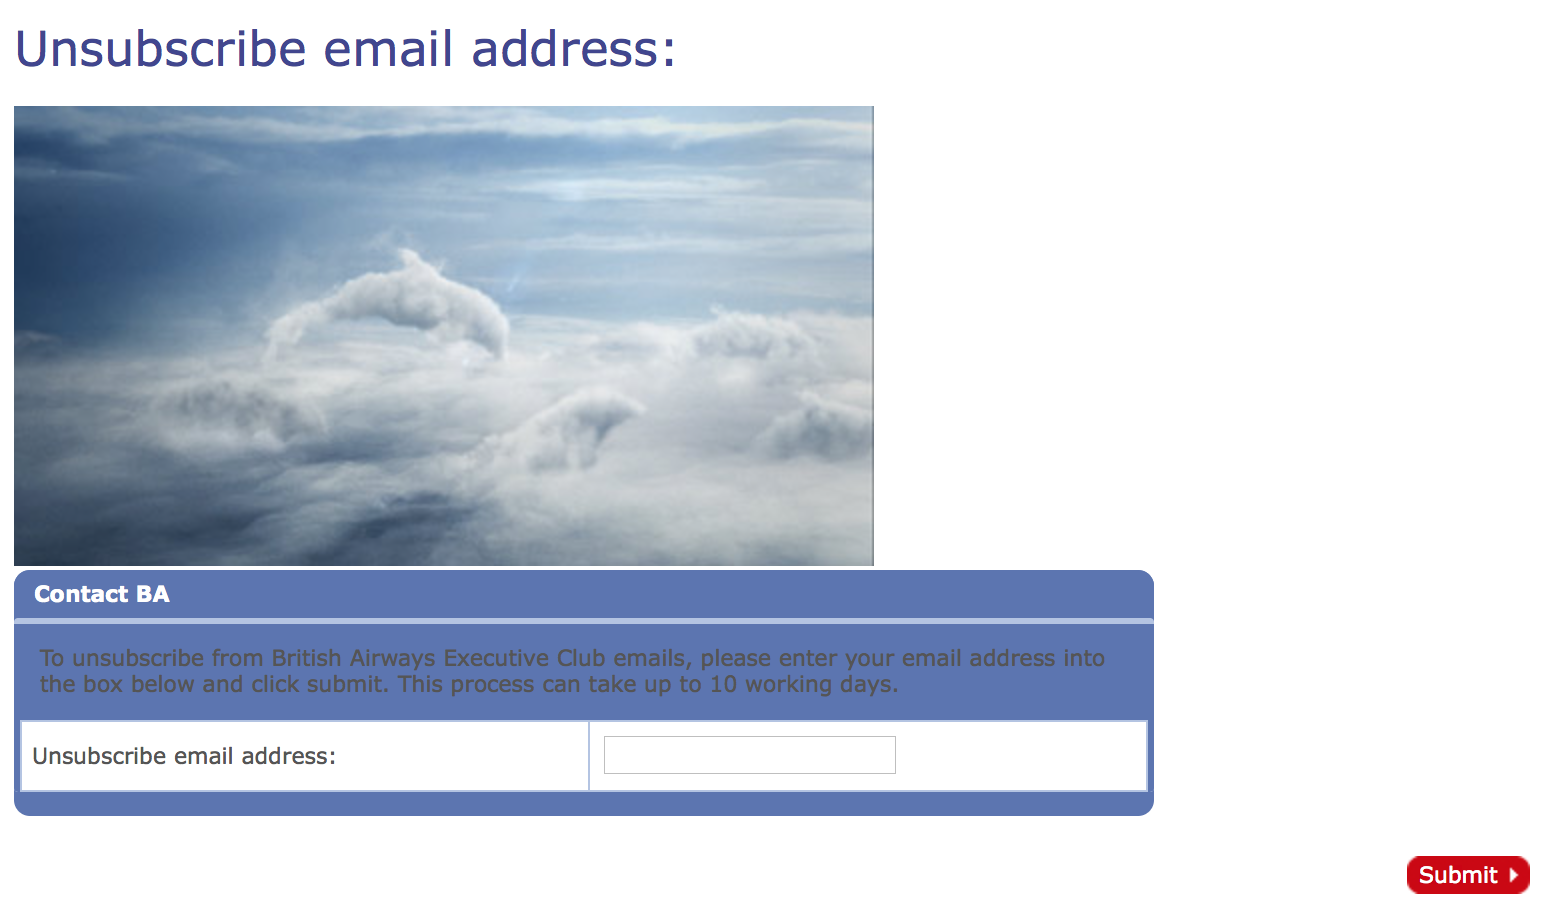 British Airways unsubscribe form